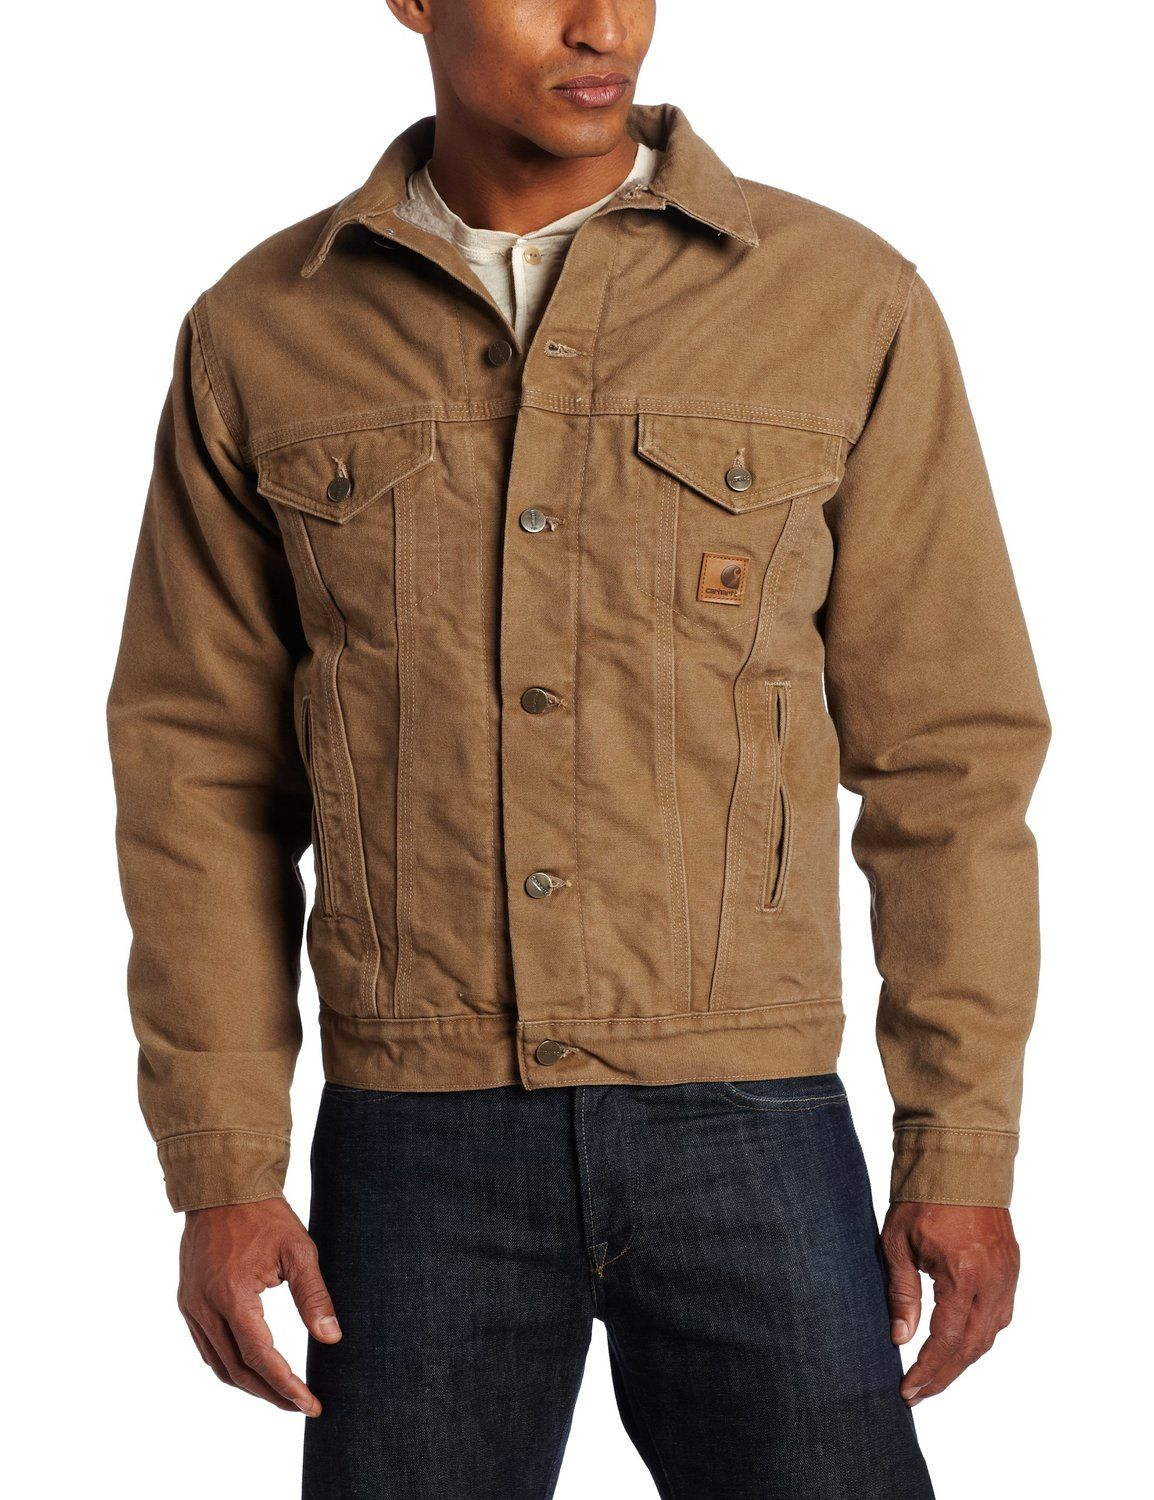 f4d052766d3 Amazon.com  Carhartt Men s Big-Tall Sandstone Duck Jean Jacket with Sherpa  Lining  Denim Jackets  Clothing